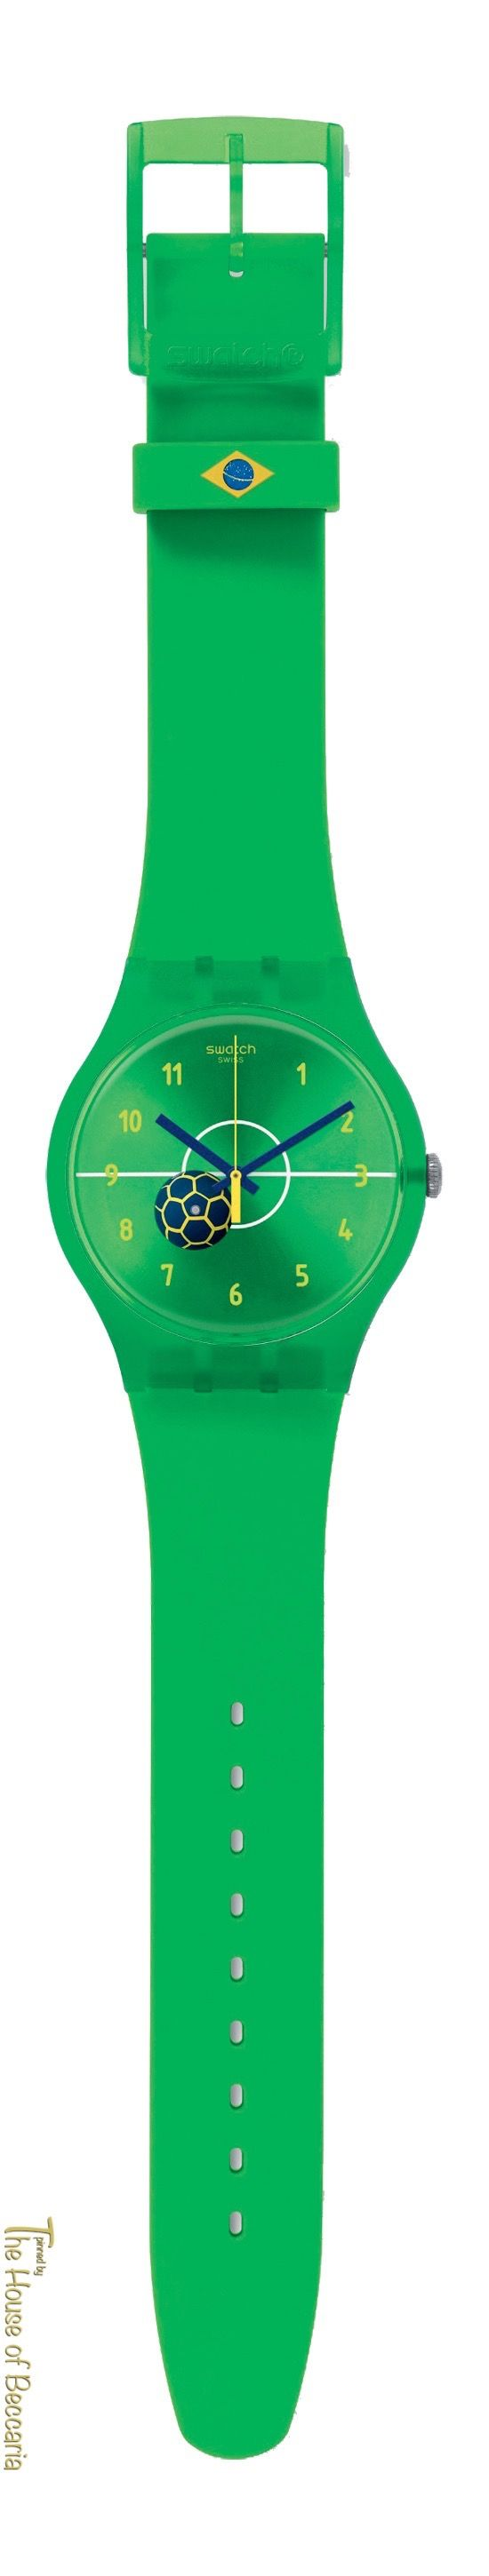 ~Swatch Entusiasmo - Brazil | The House of Beccaria